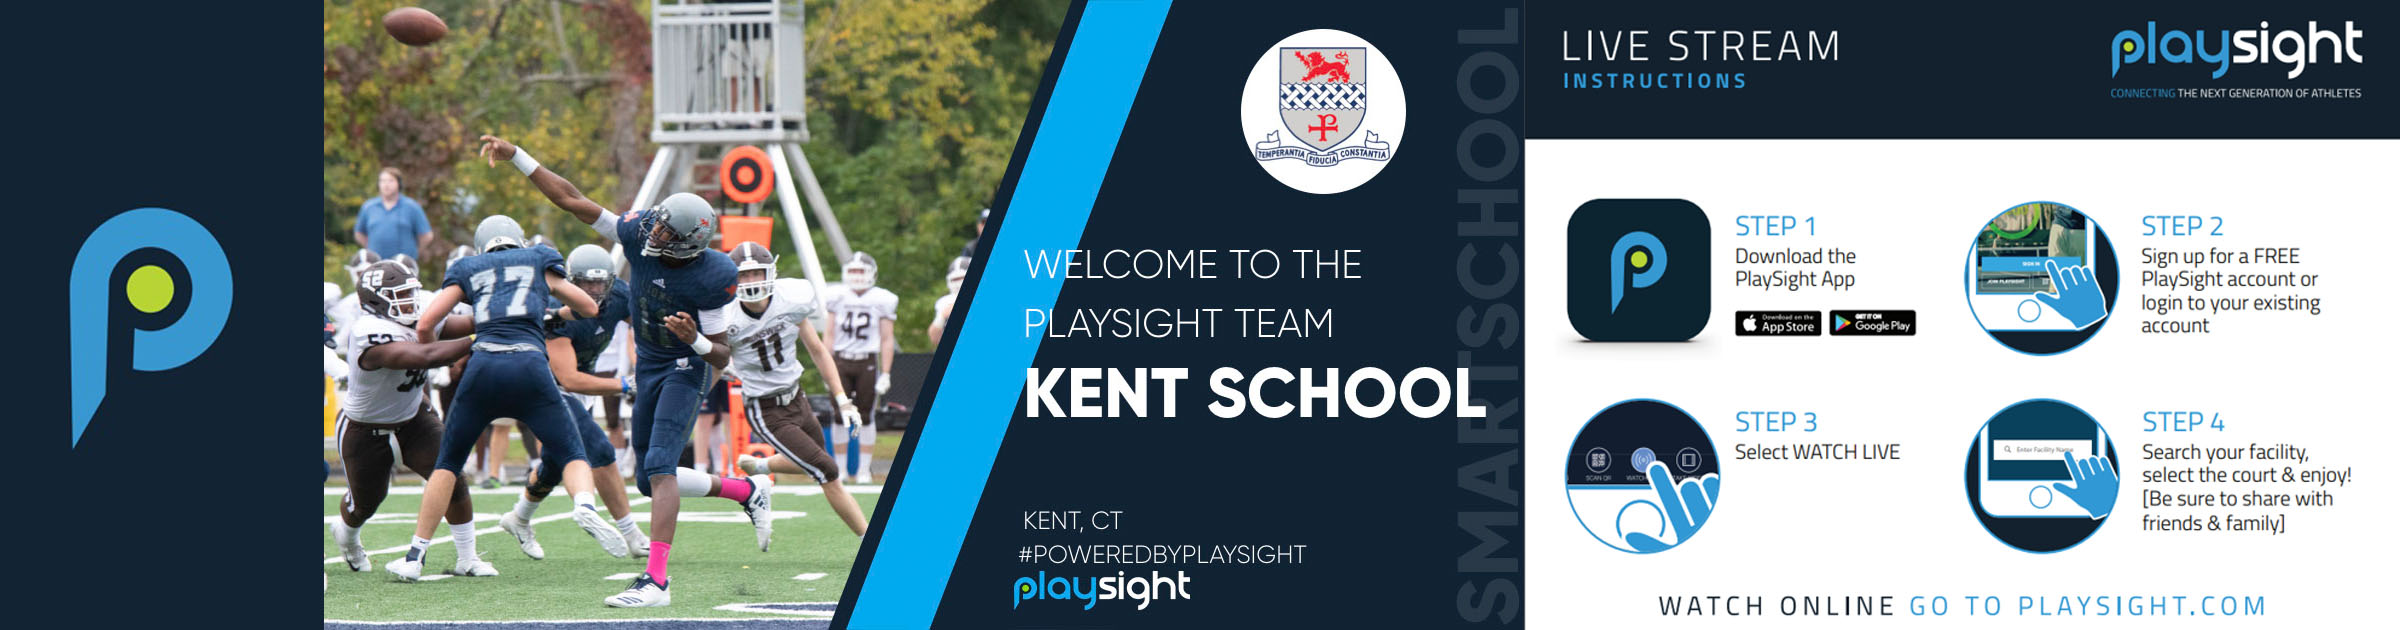 Kent playsight how to